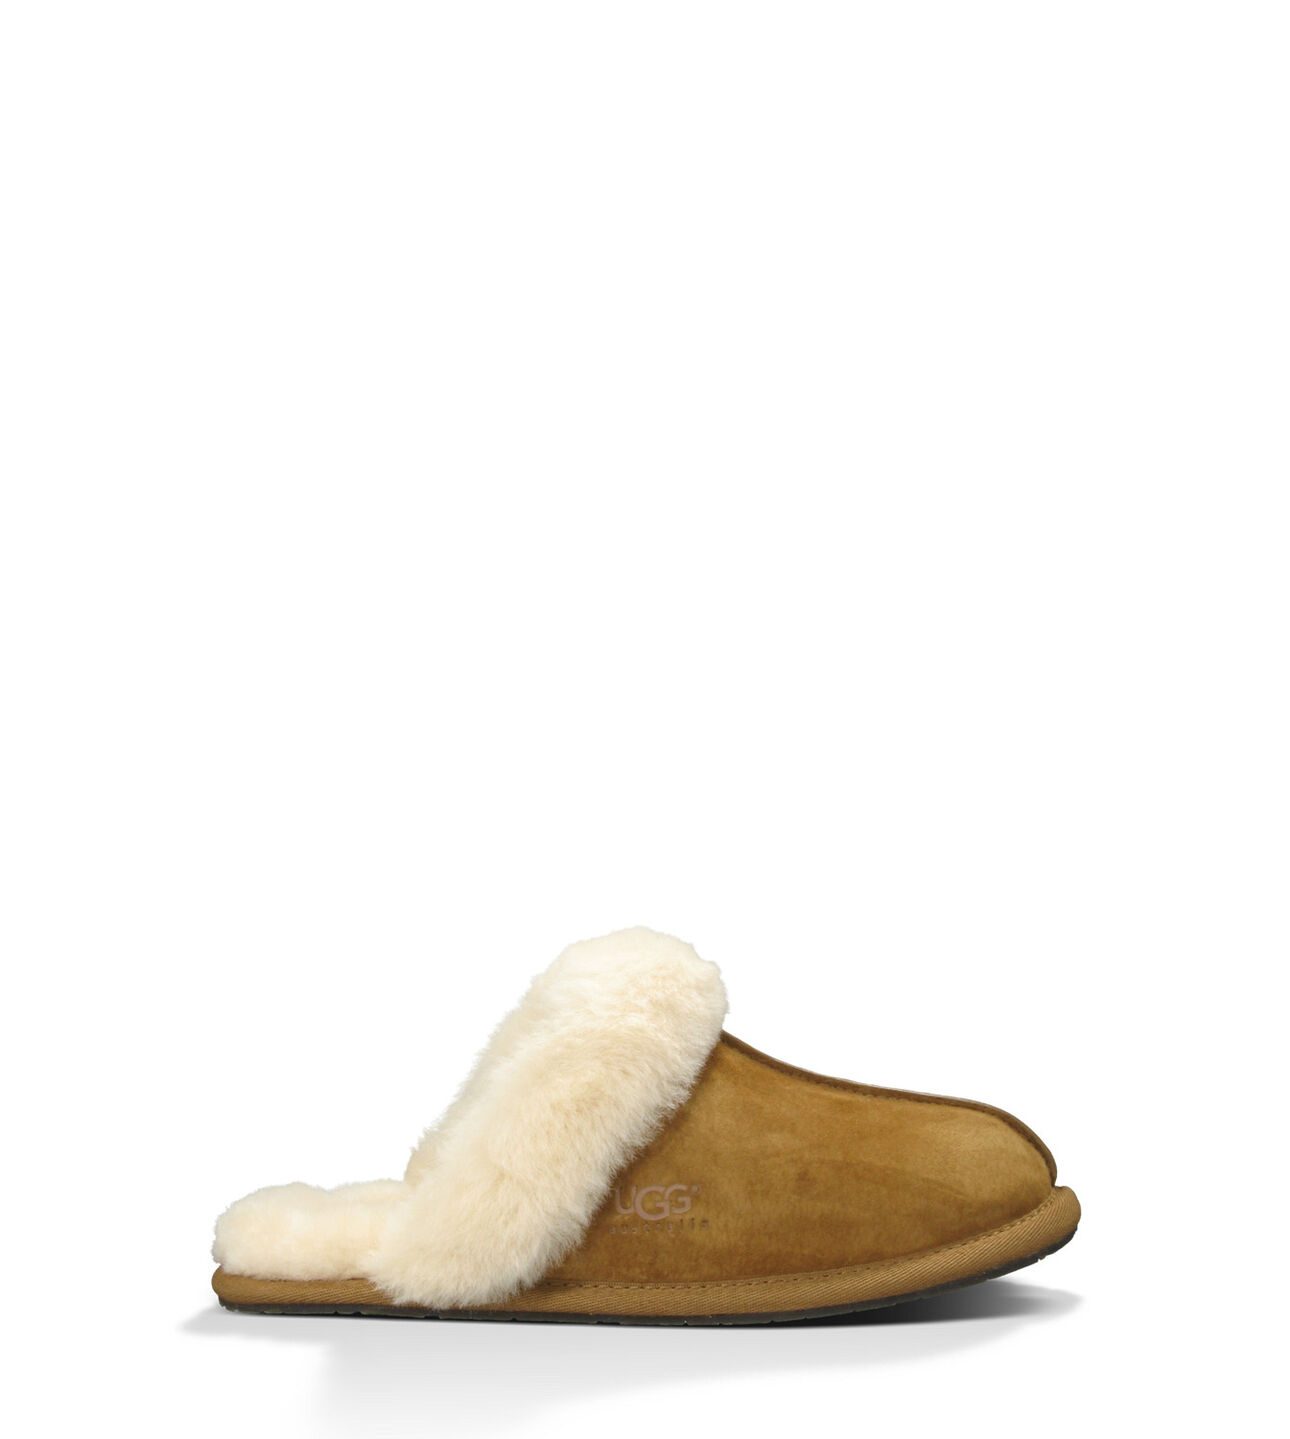 ugg bedroom slippers. Scuffette II Slipper UGG  Official Women s Slippers Collection Free Shipping